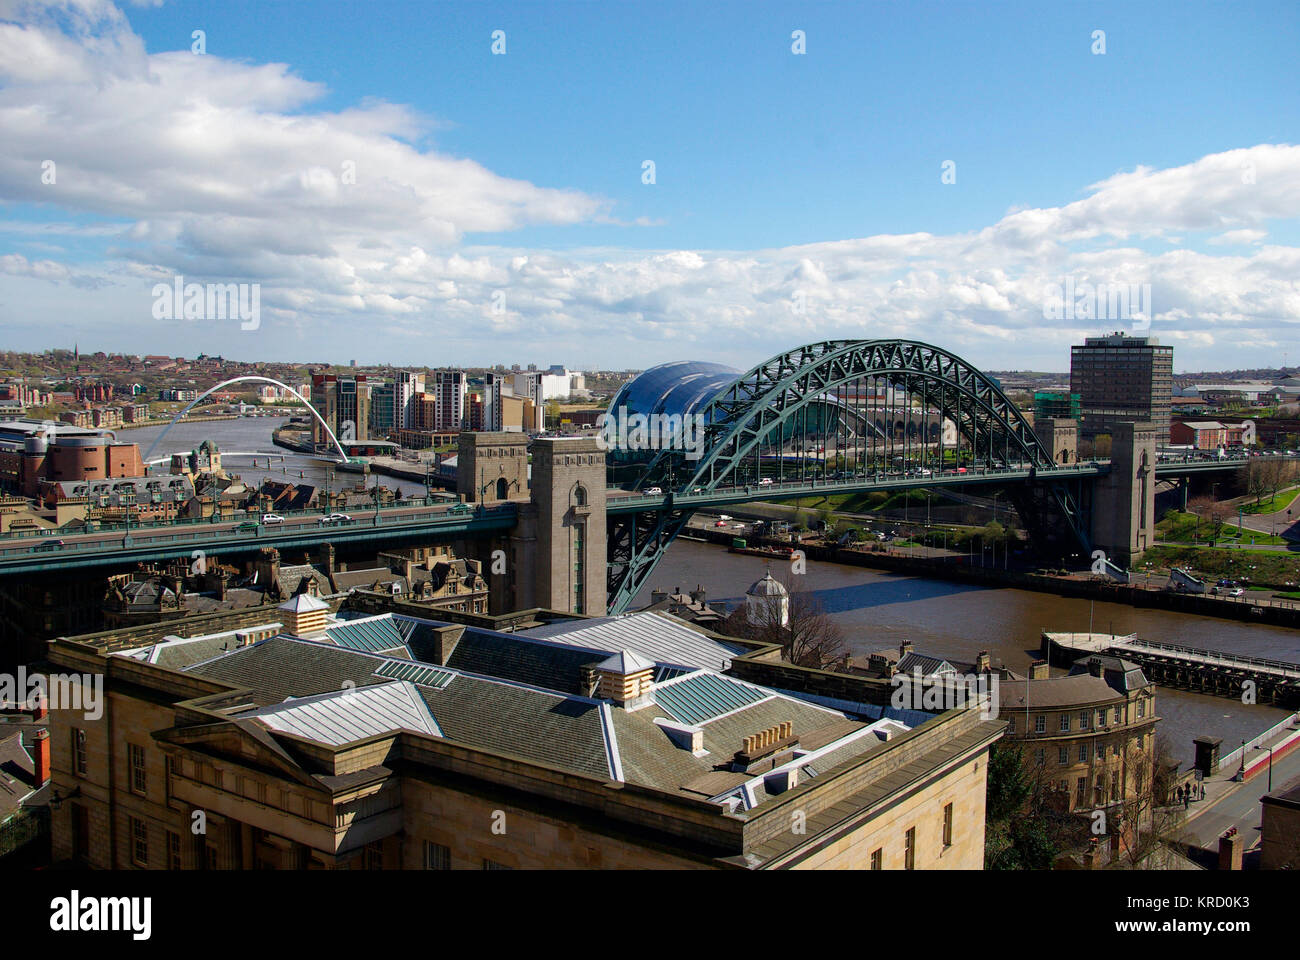 The Tyne Bridge is a compression arch suspended-deck bridge linking Newcastle upon Tyne and Gateshead. It was designed - Stock Image